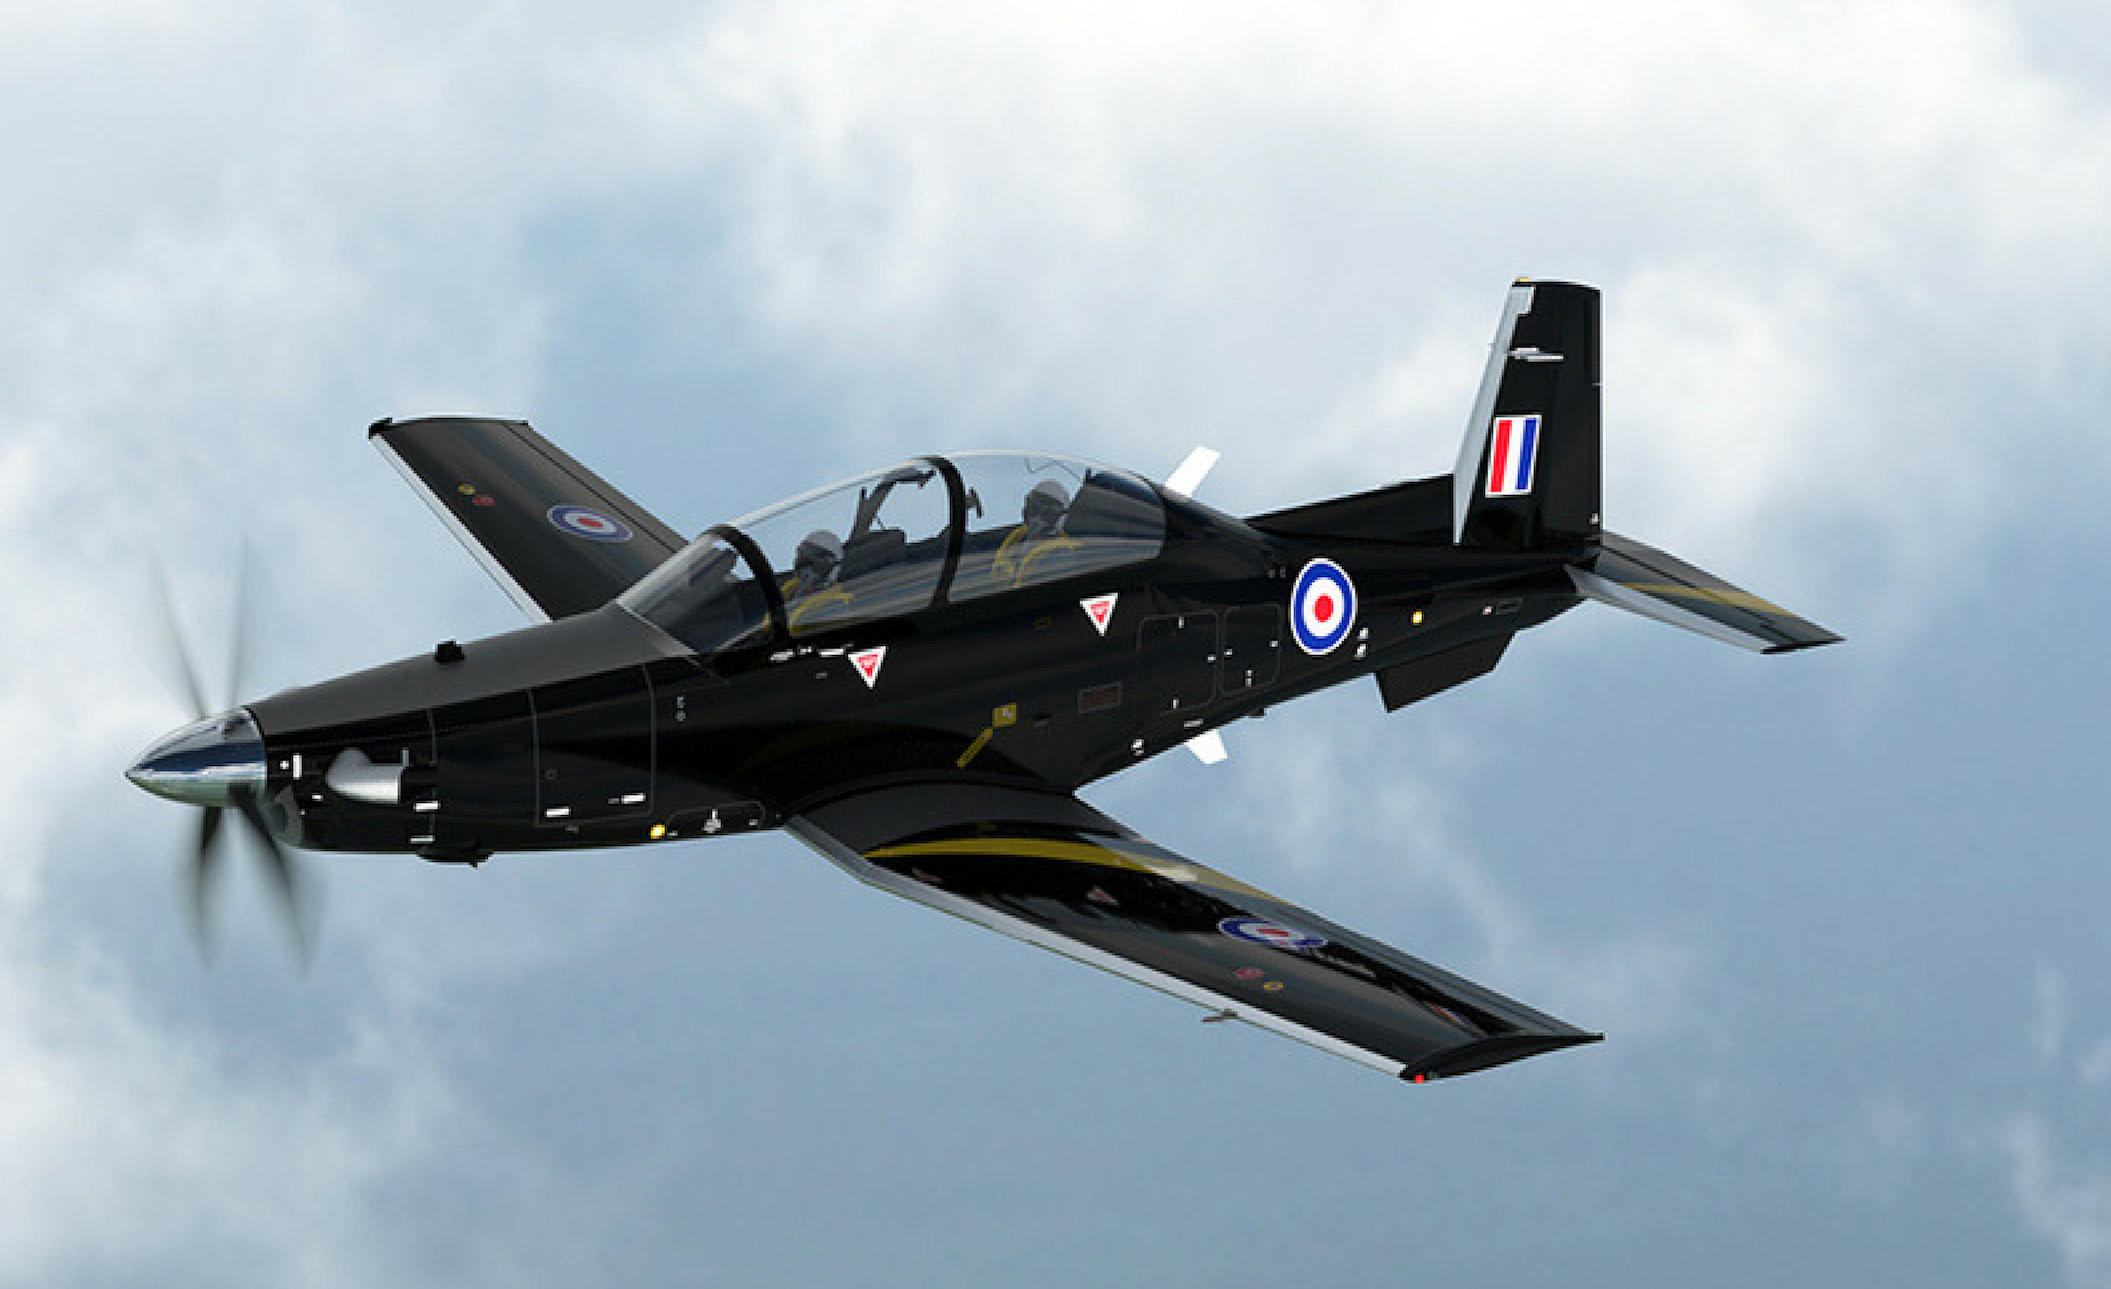 BEECHCRAFT T-6C TEXAN II